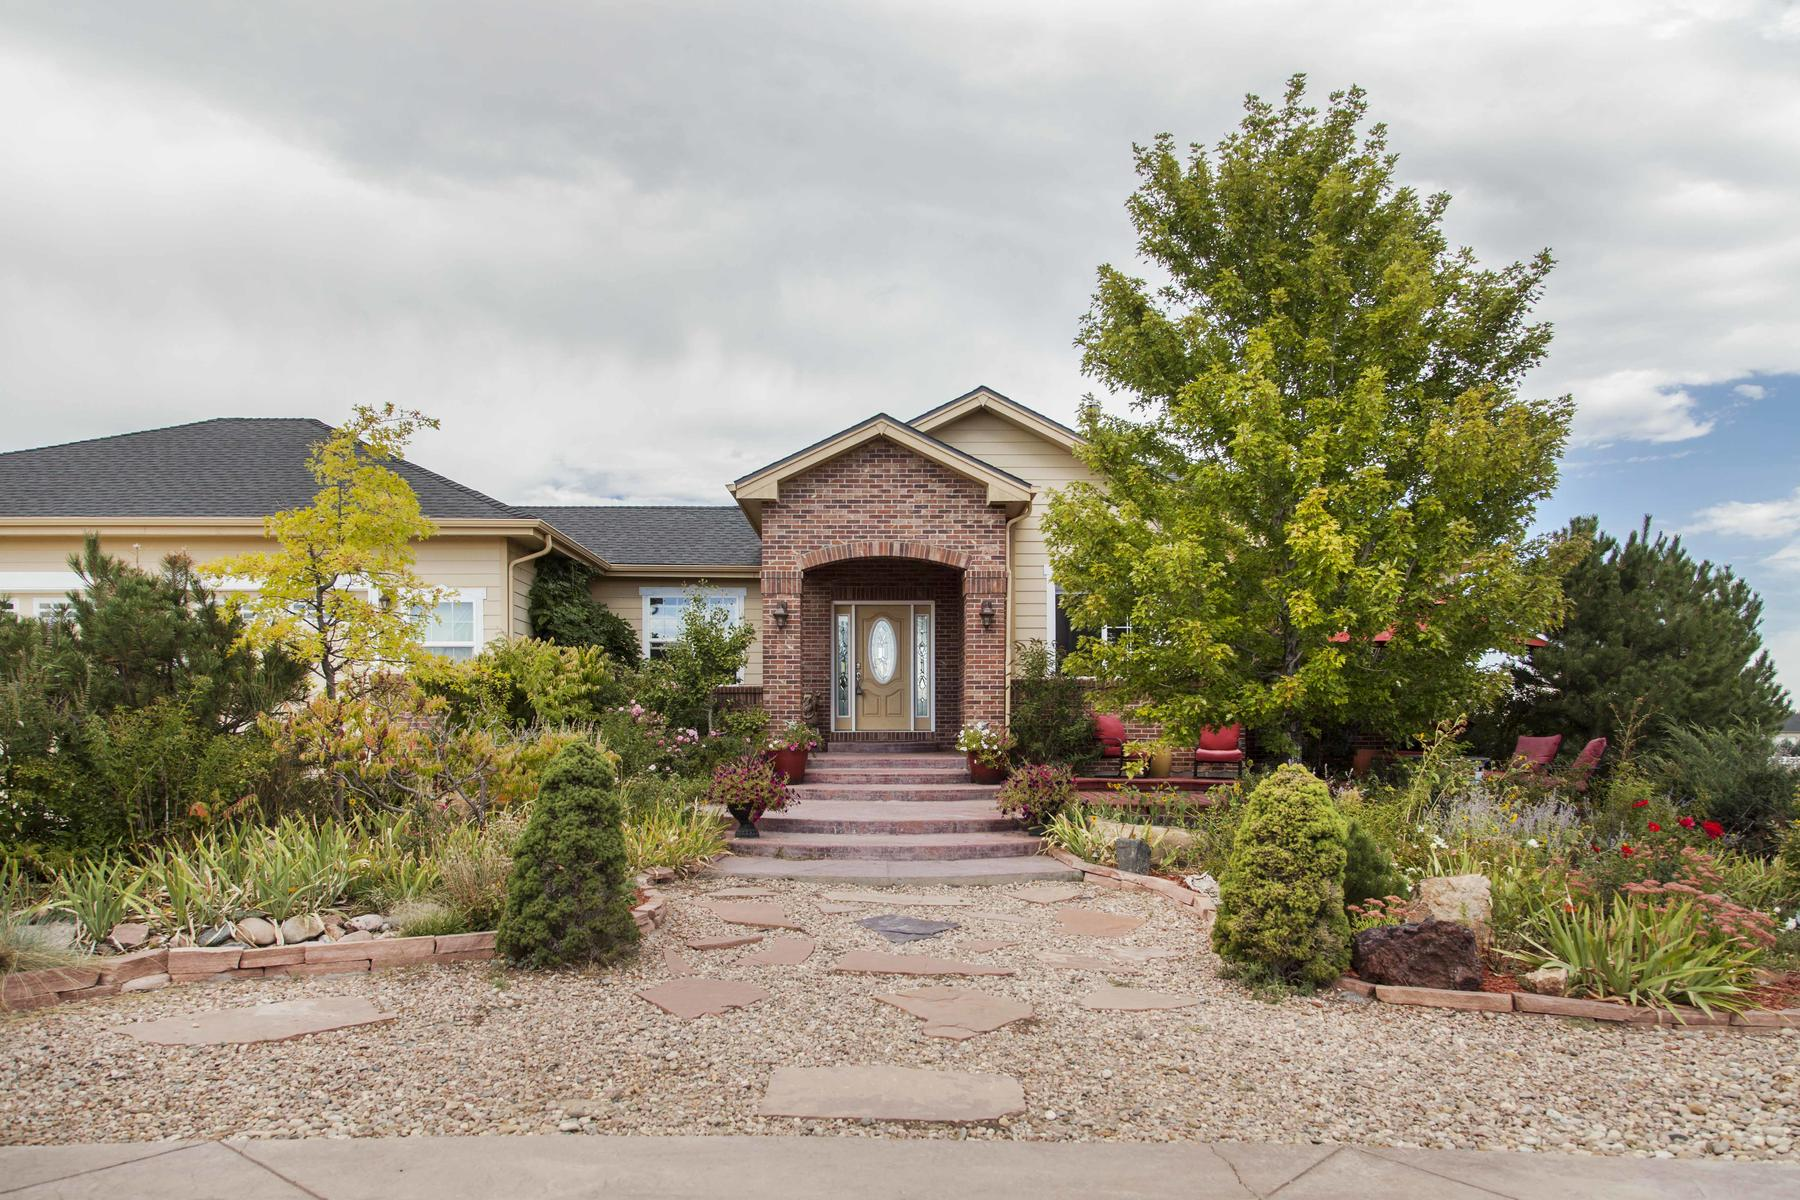 Property for Active at Welcome to your oasis 31049 E 150th Ave Brighton, Colorado 80603 United States